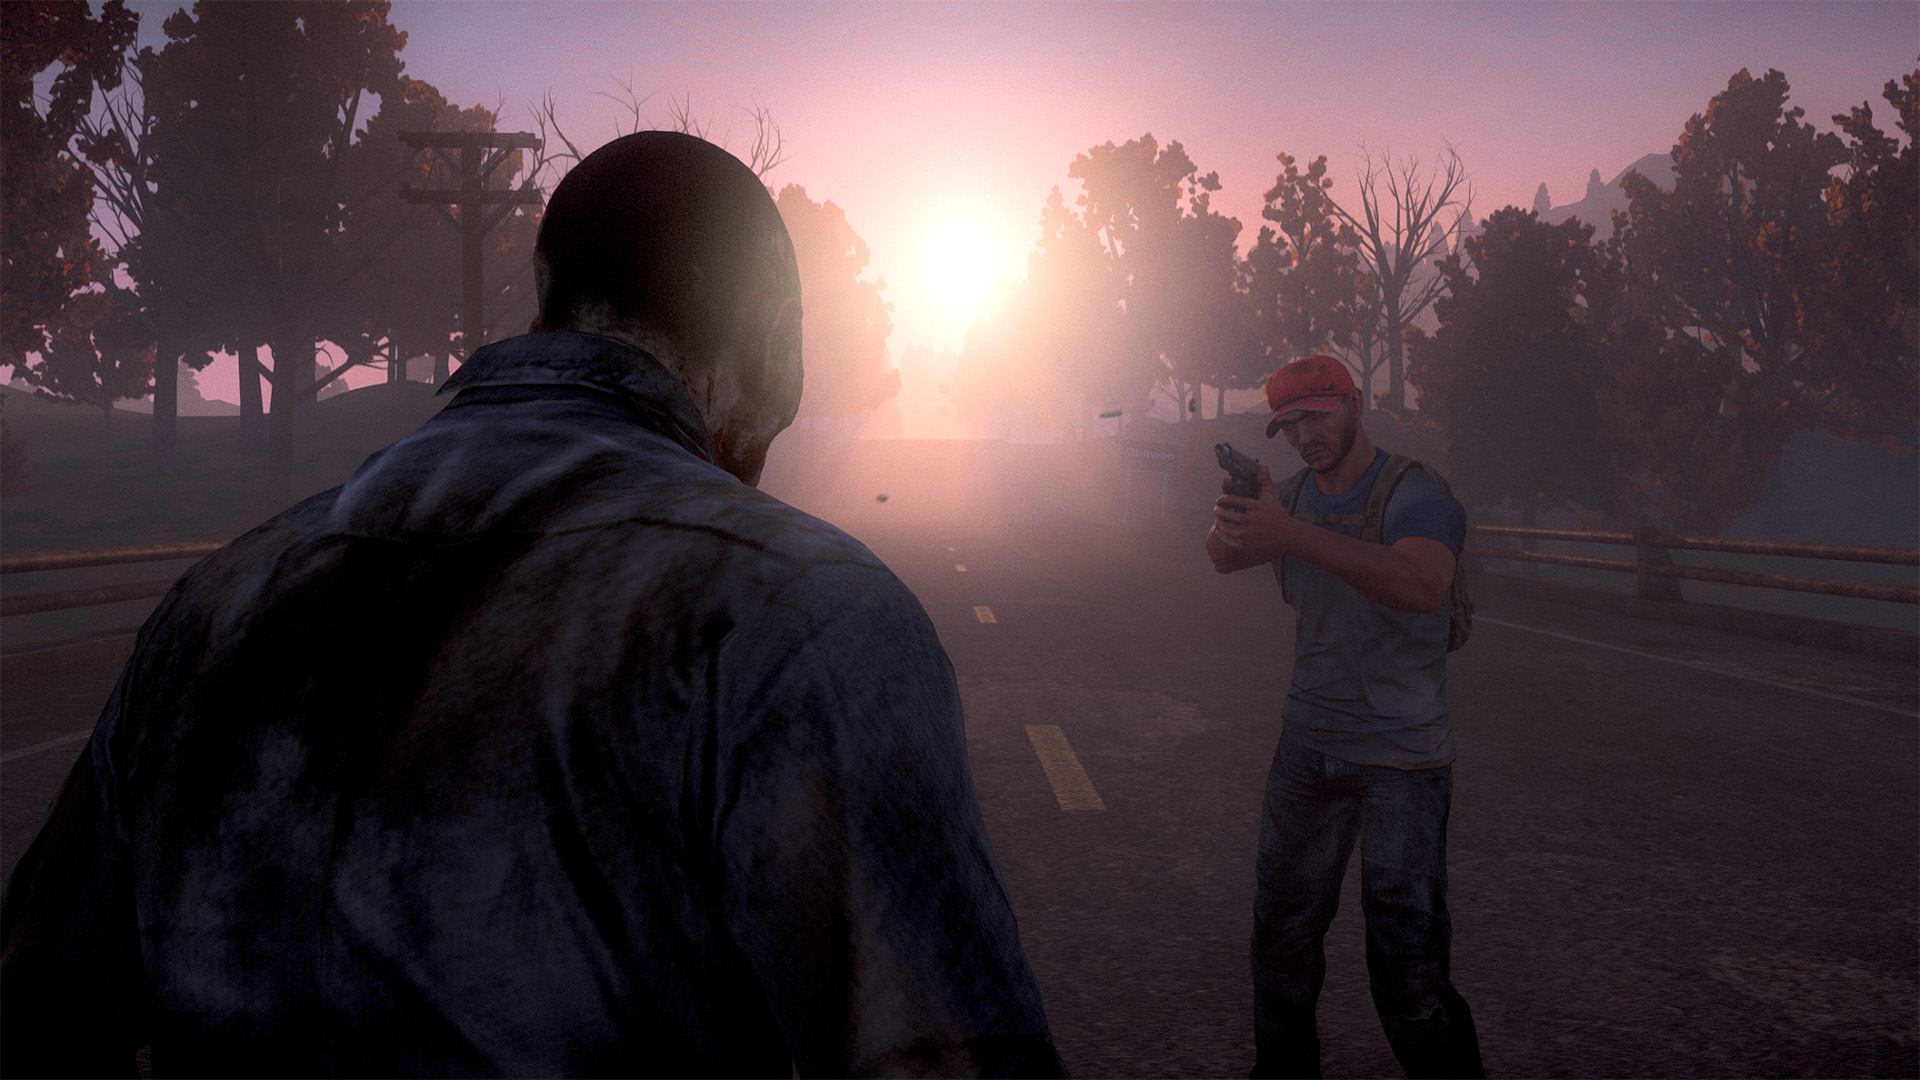 6 important things to know ahead of H1Z1's Early Access launch